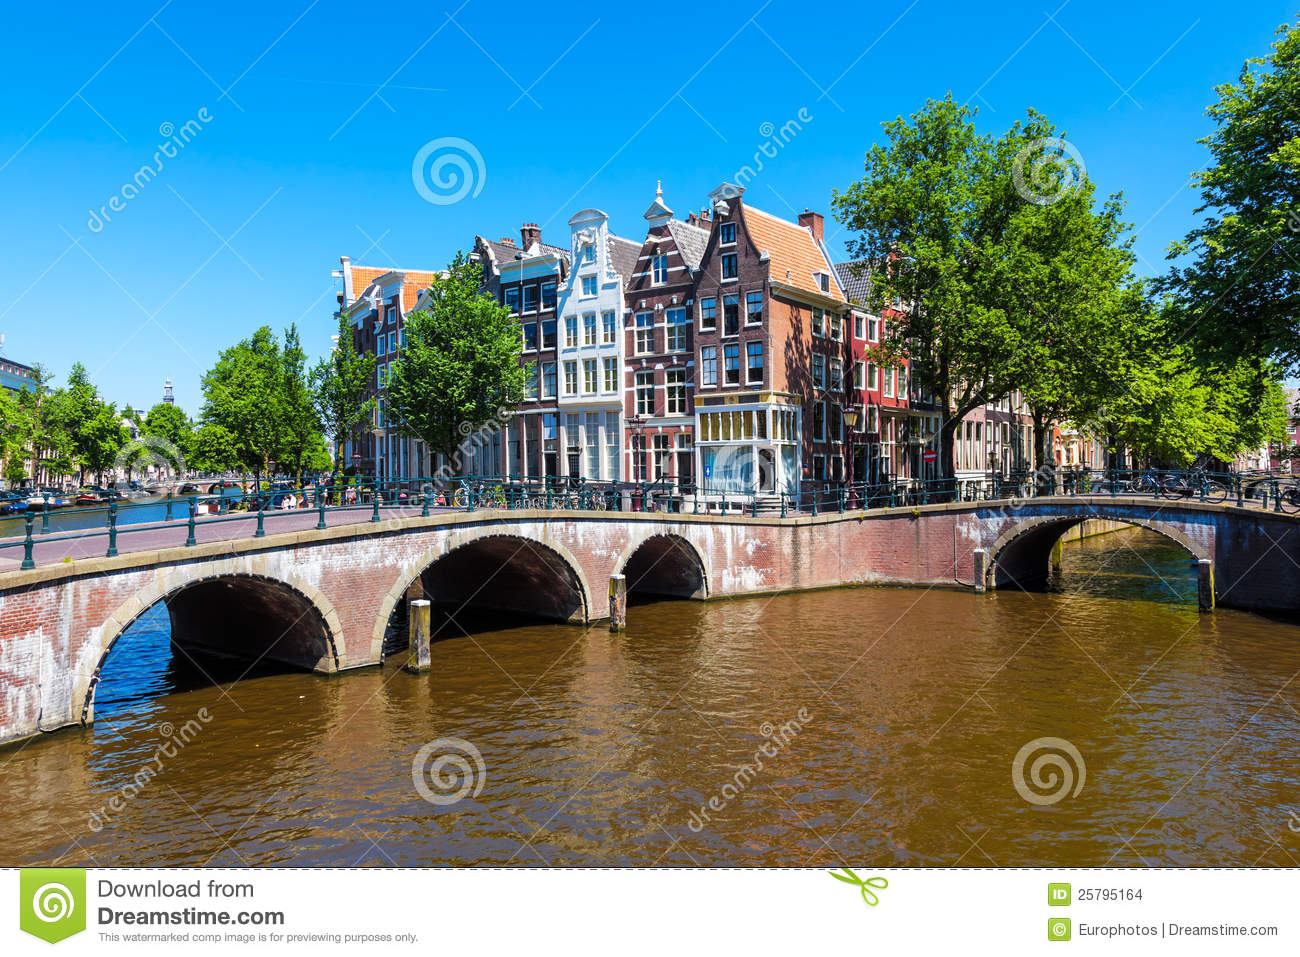 Download Amsterdam, the Netherlands stock photo. Image of europe - 25795164